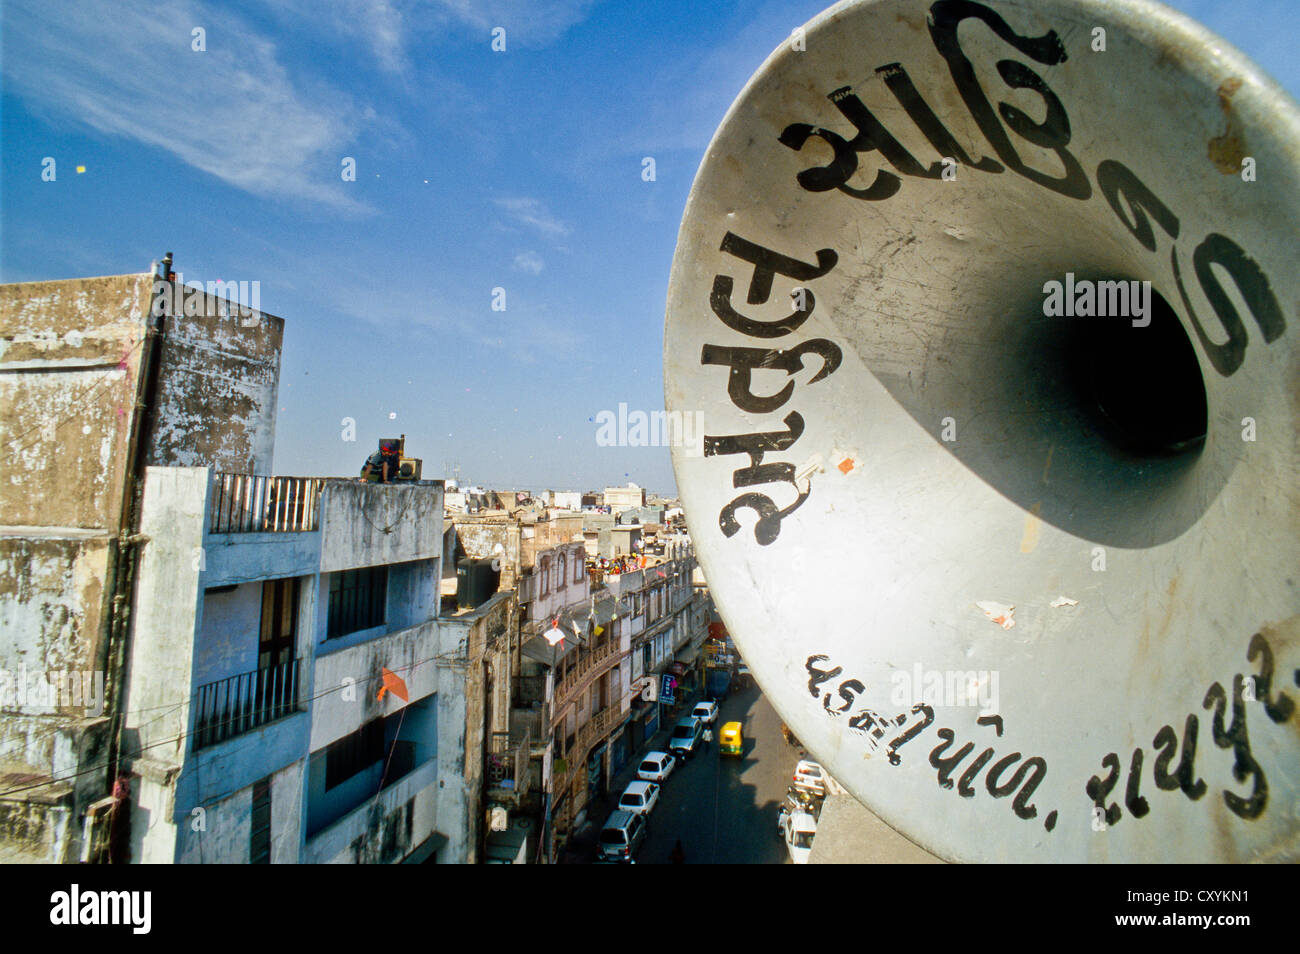 Loudspeakers playing music from the roofs during the annual kite festival, Ahmedabad, India, Asia - Stock Image